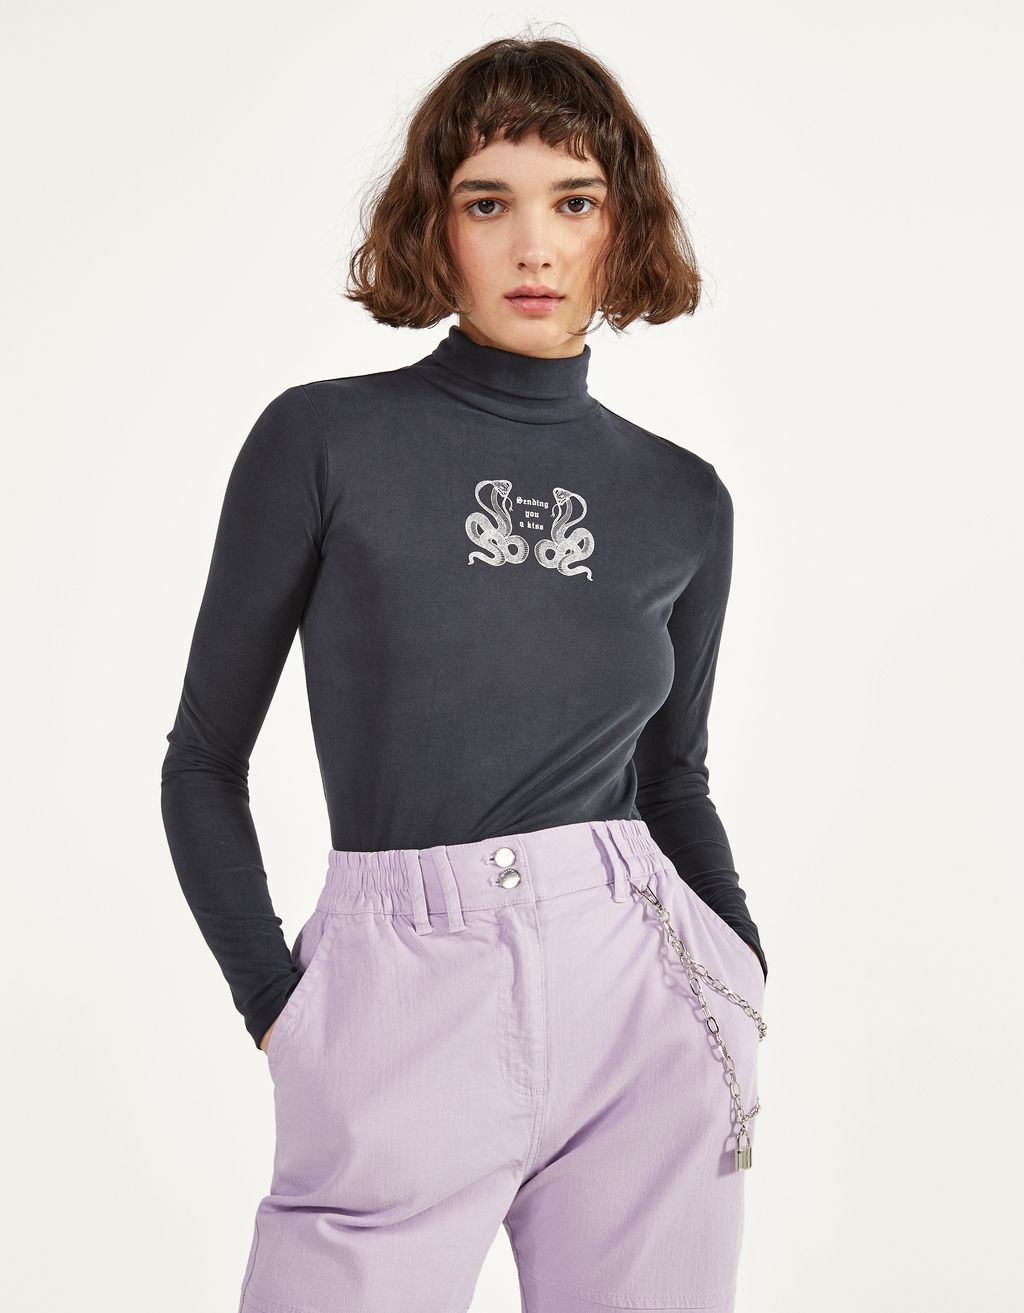 Turtleneck T-shirt with print